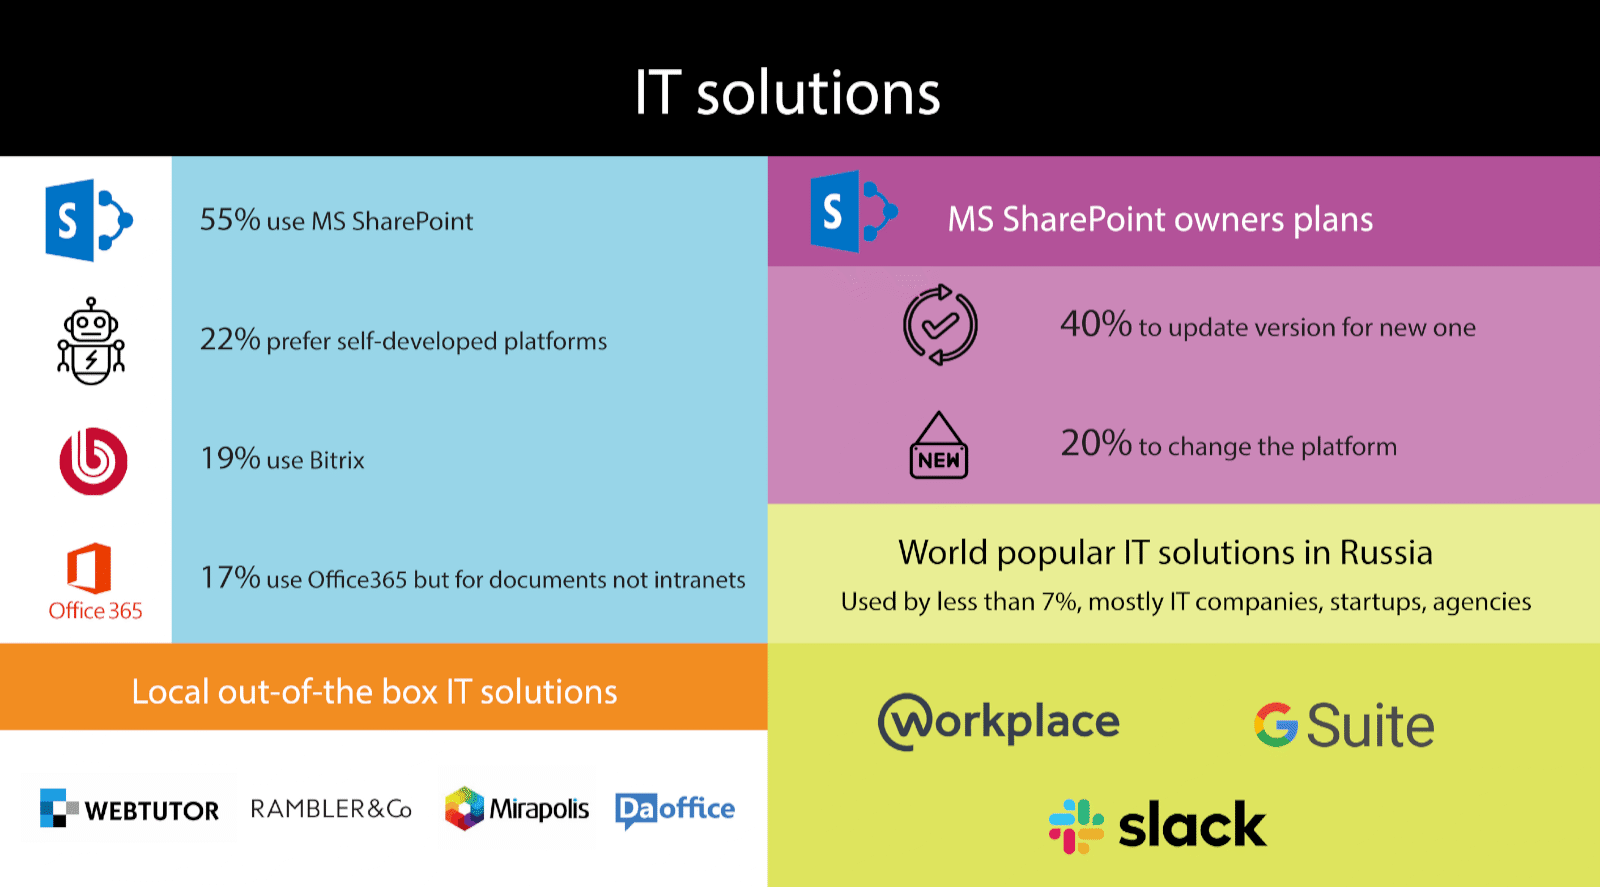 IT solutions: 55% use SharePoint. 22% use self-developed platforms. 19% use Bitrix. 17% use Office 365 for documents not intranets. Local off-the-shelf solutions: WebTutor, Rambler & Co, Mirapolis, Da Office. 20% of SharePoint owners plan to change platforms. Only 7% use things like Workplace, G Suite, and Slack.